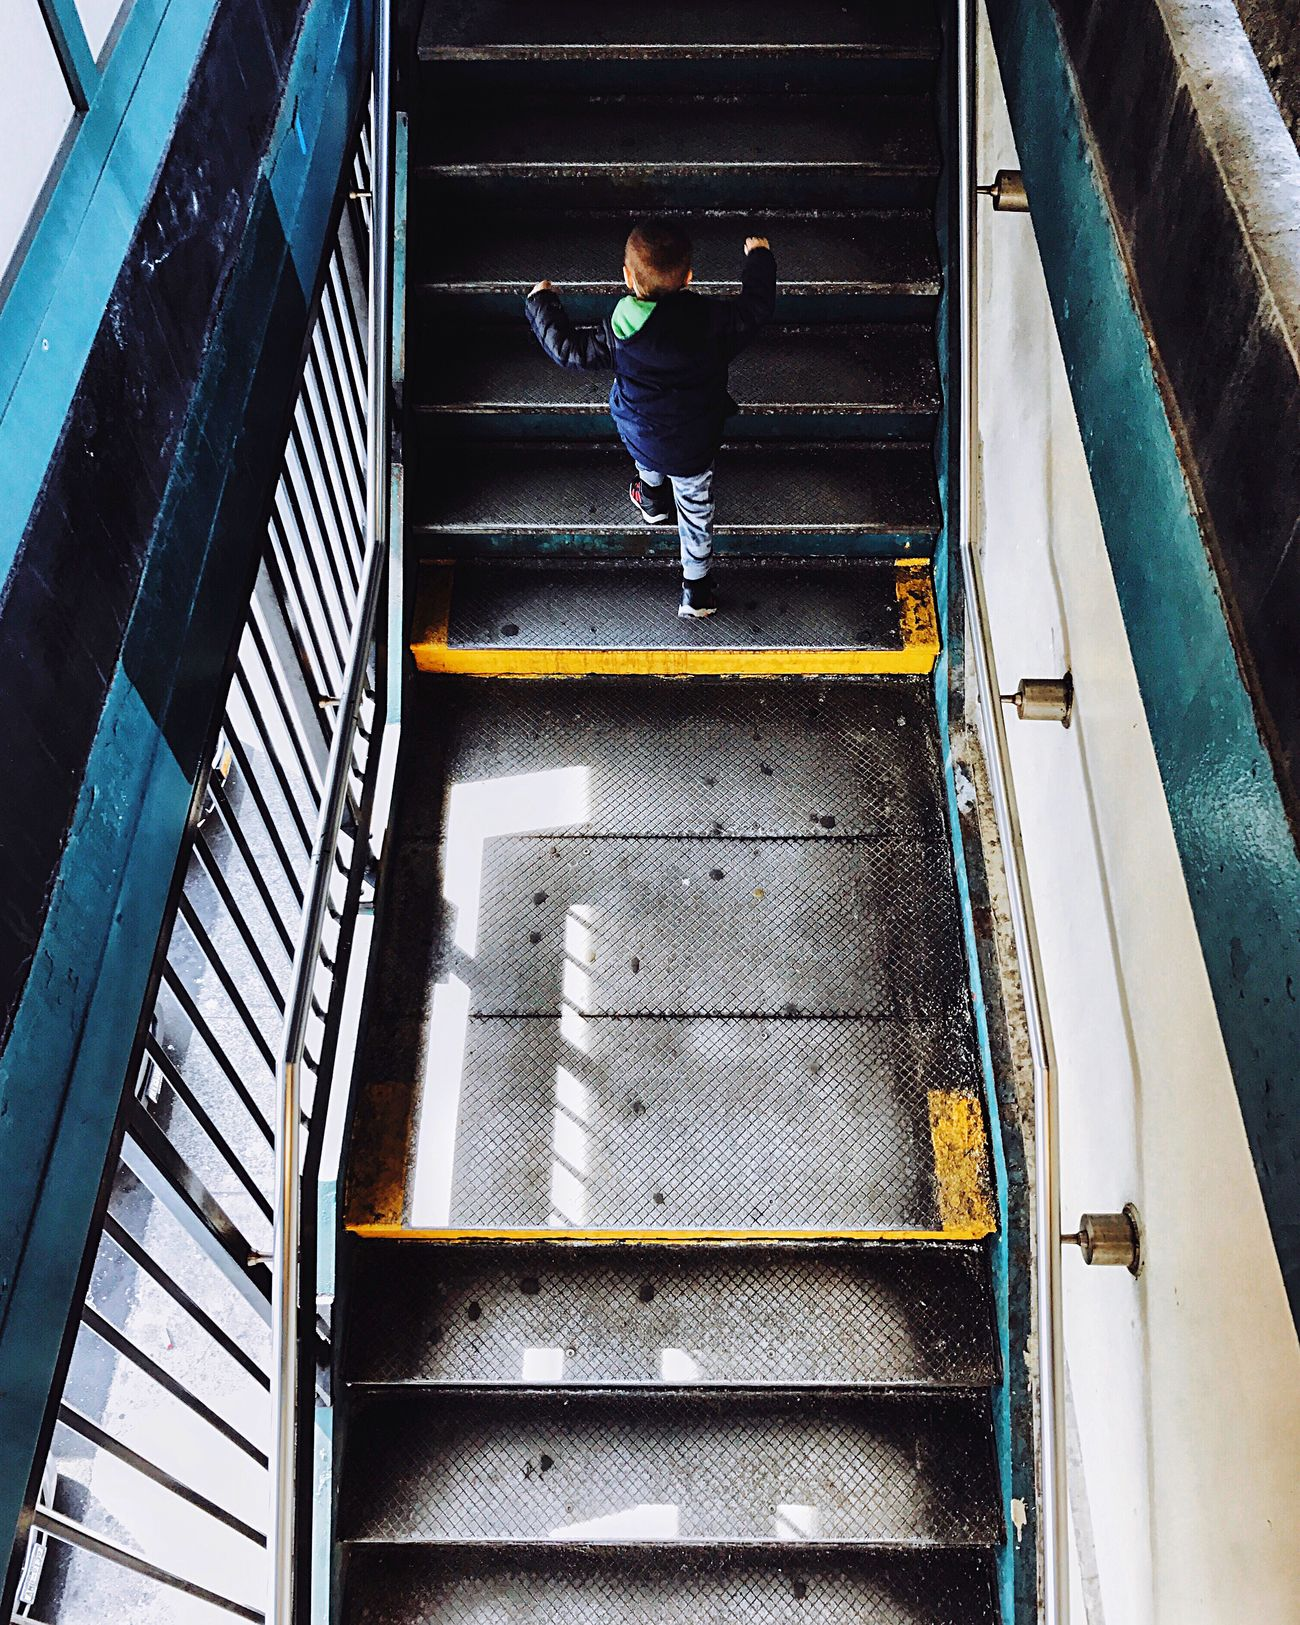 People streetphotography One Person Steps candid Full Length Real People Lifestyles Casual Clothing High Angle View Steps And Staircases Railing Rear View Leisure Activity Staircase Outdoors Day Architecture First Eyeem Photo